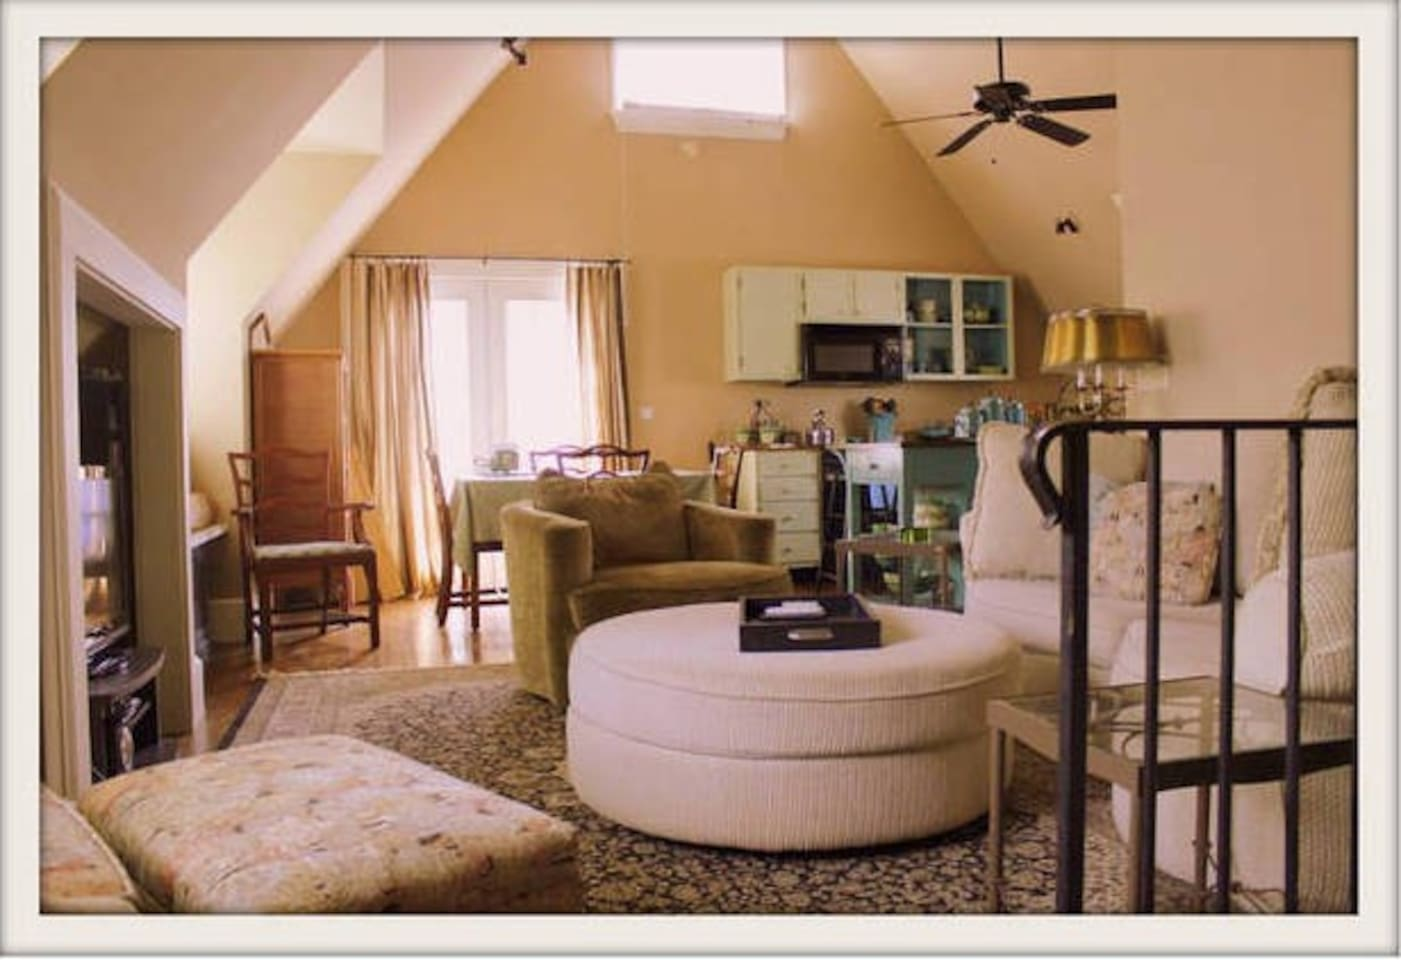 Vaulted ceilings and hardwood flooring throughout carriage house.